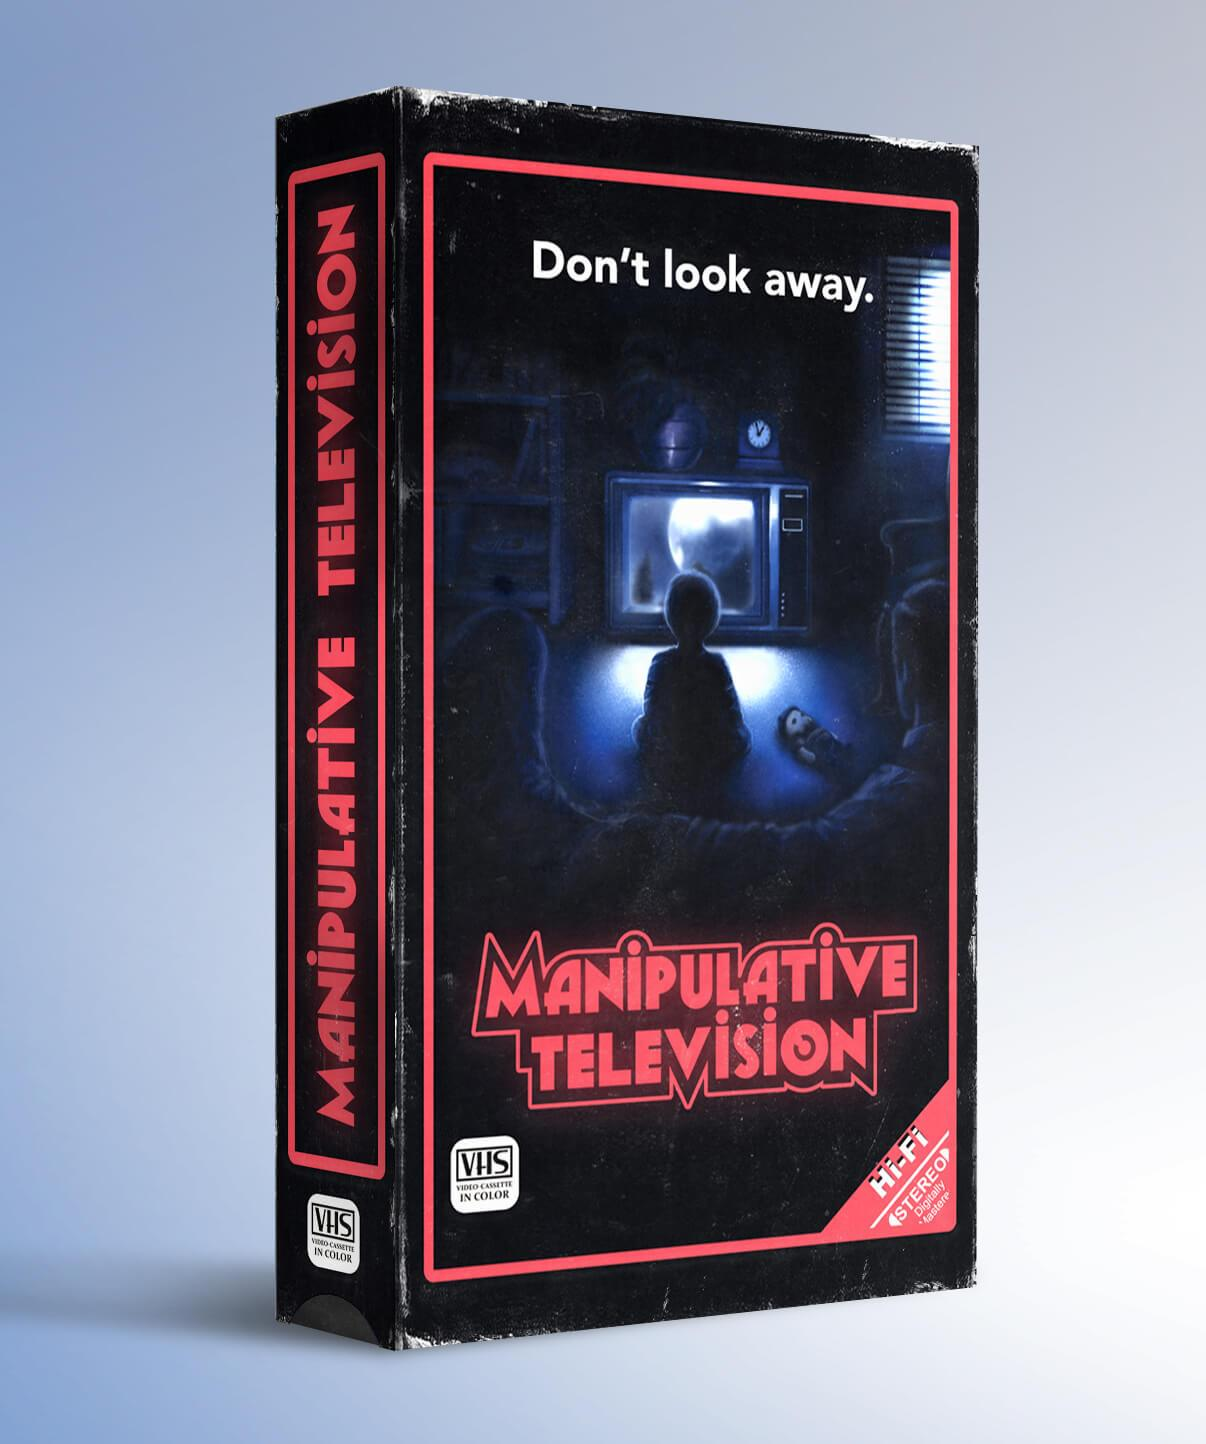 Manipulative Television VHS VHS by Nexpo - Pixel Empire